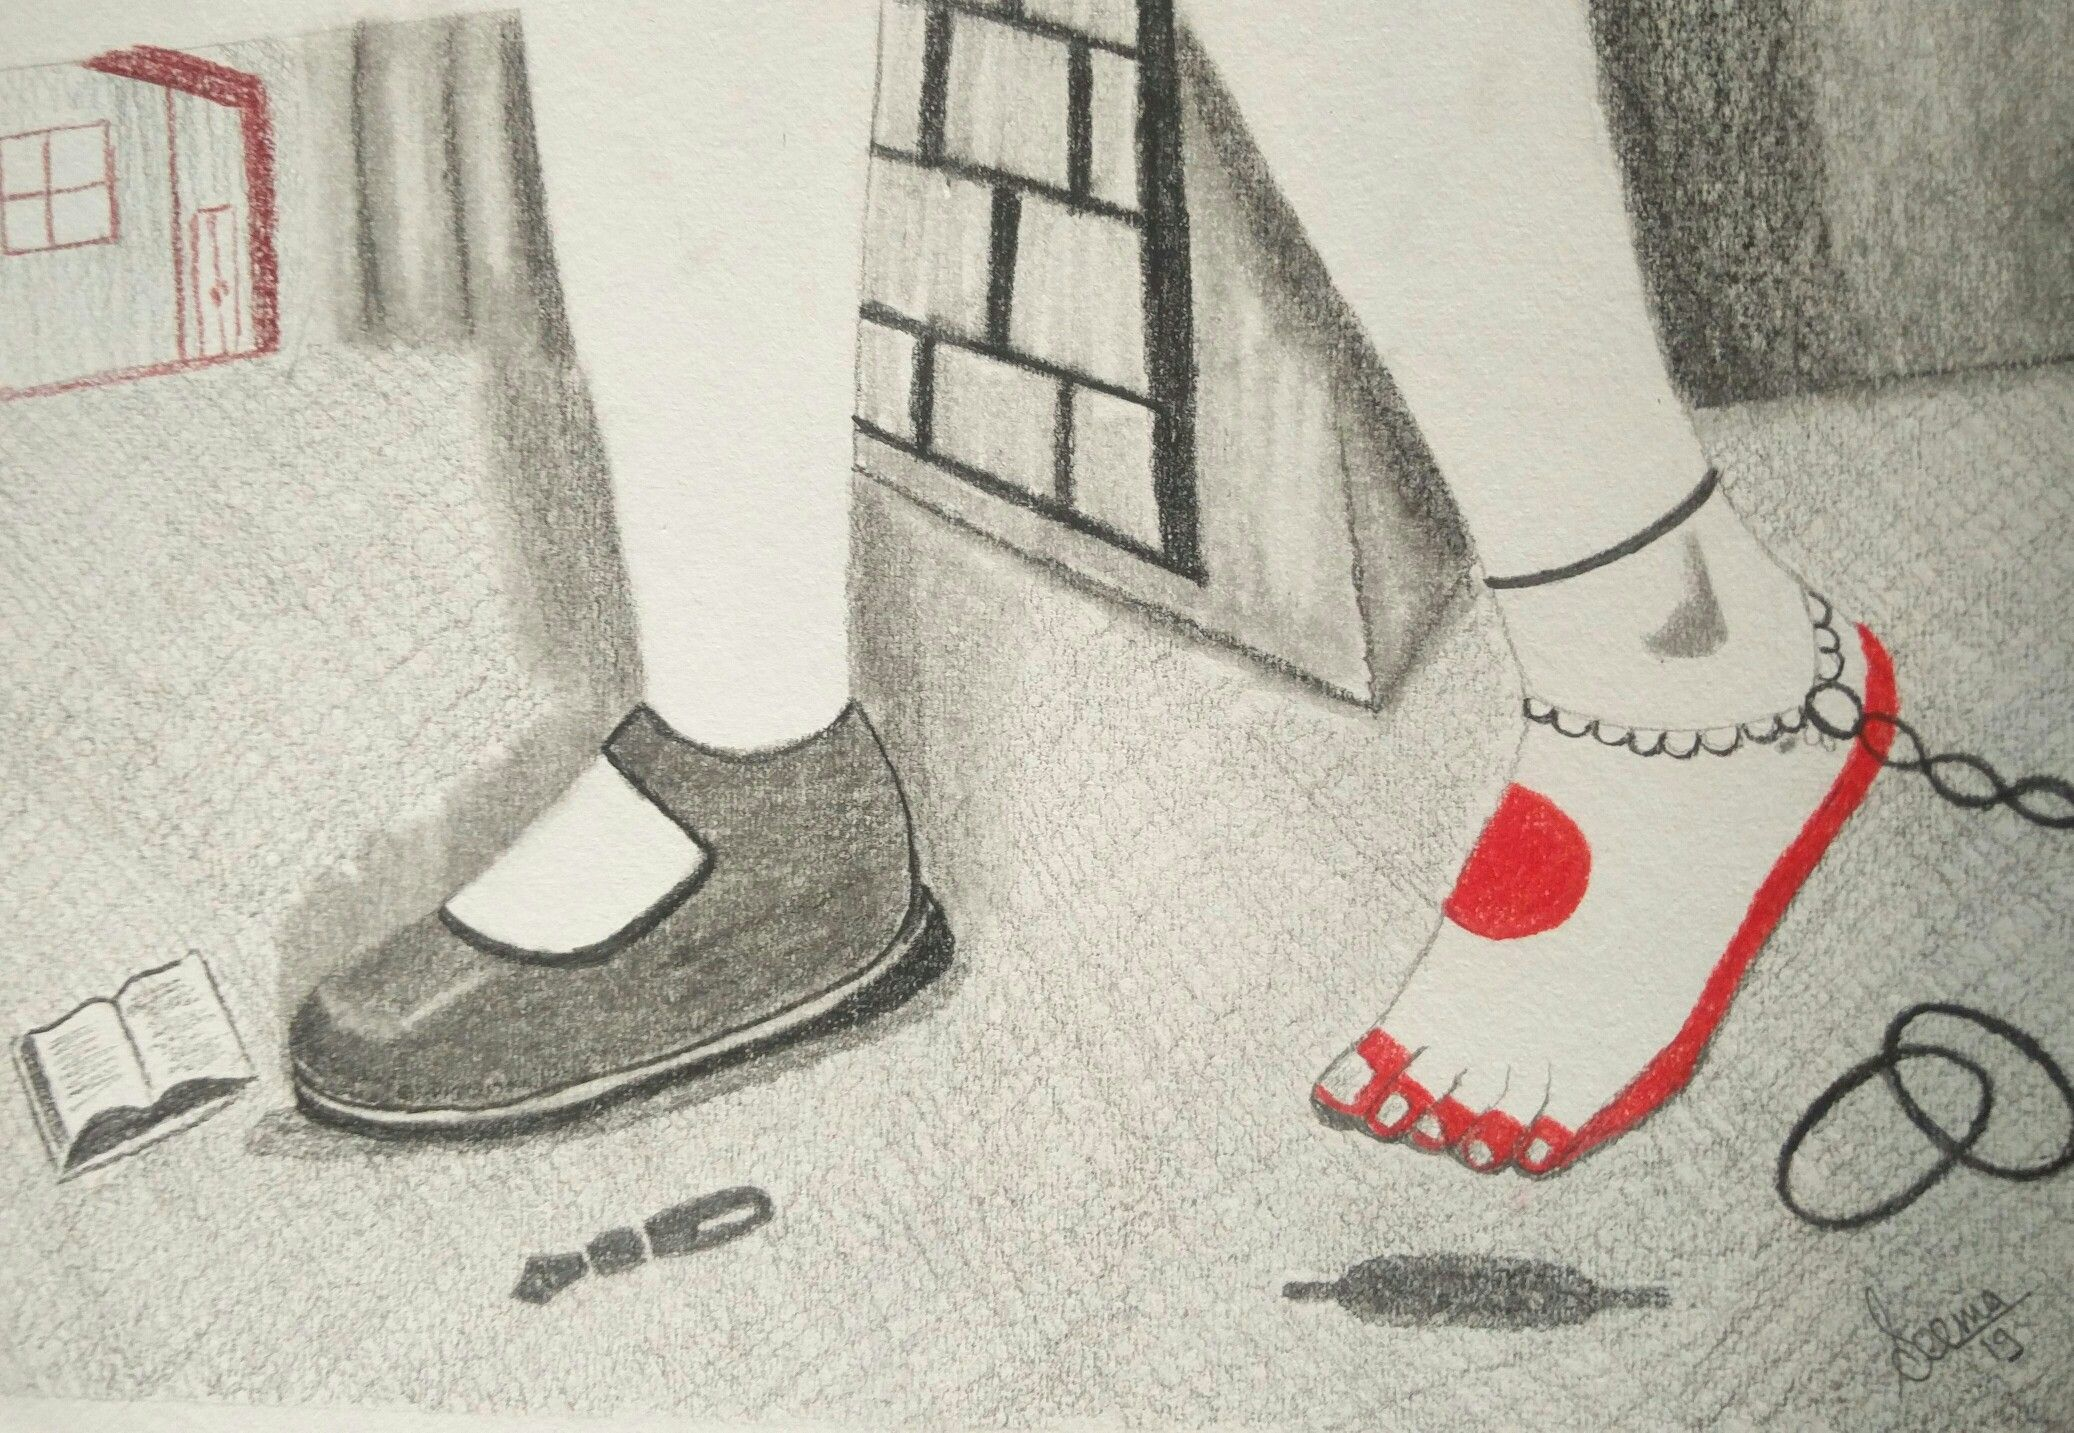 Girl child having school shoe in one foot while schakles in other.